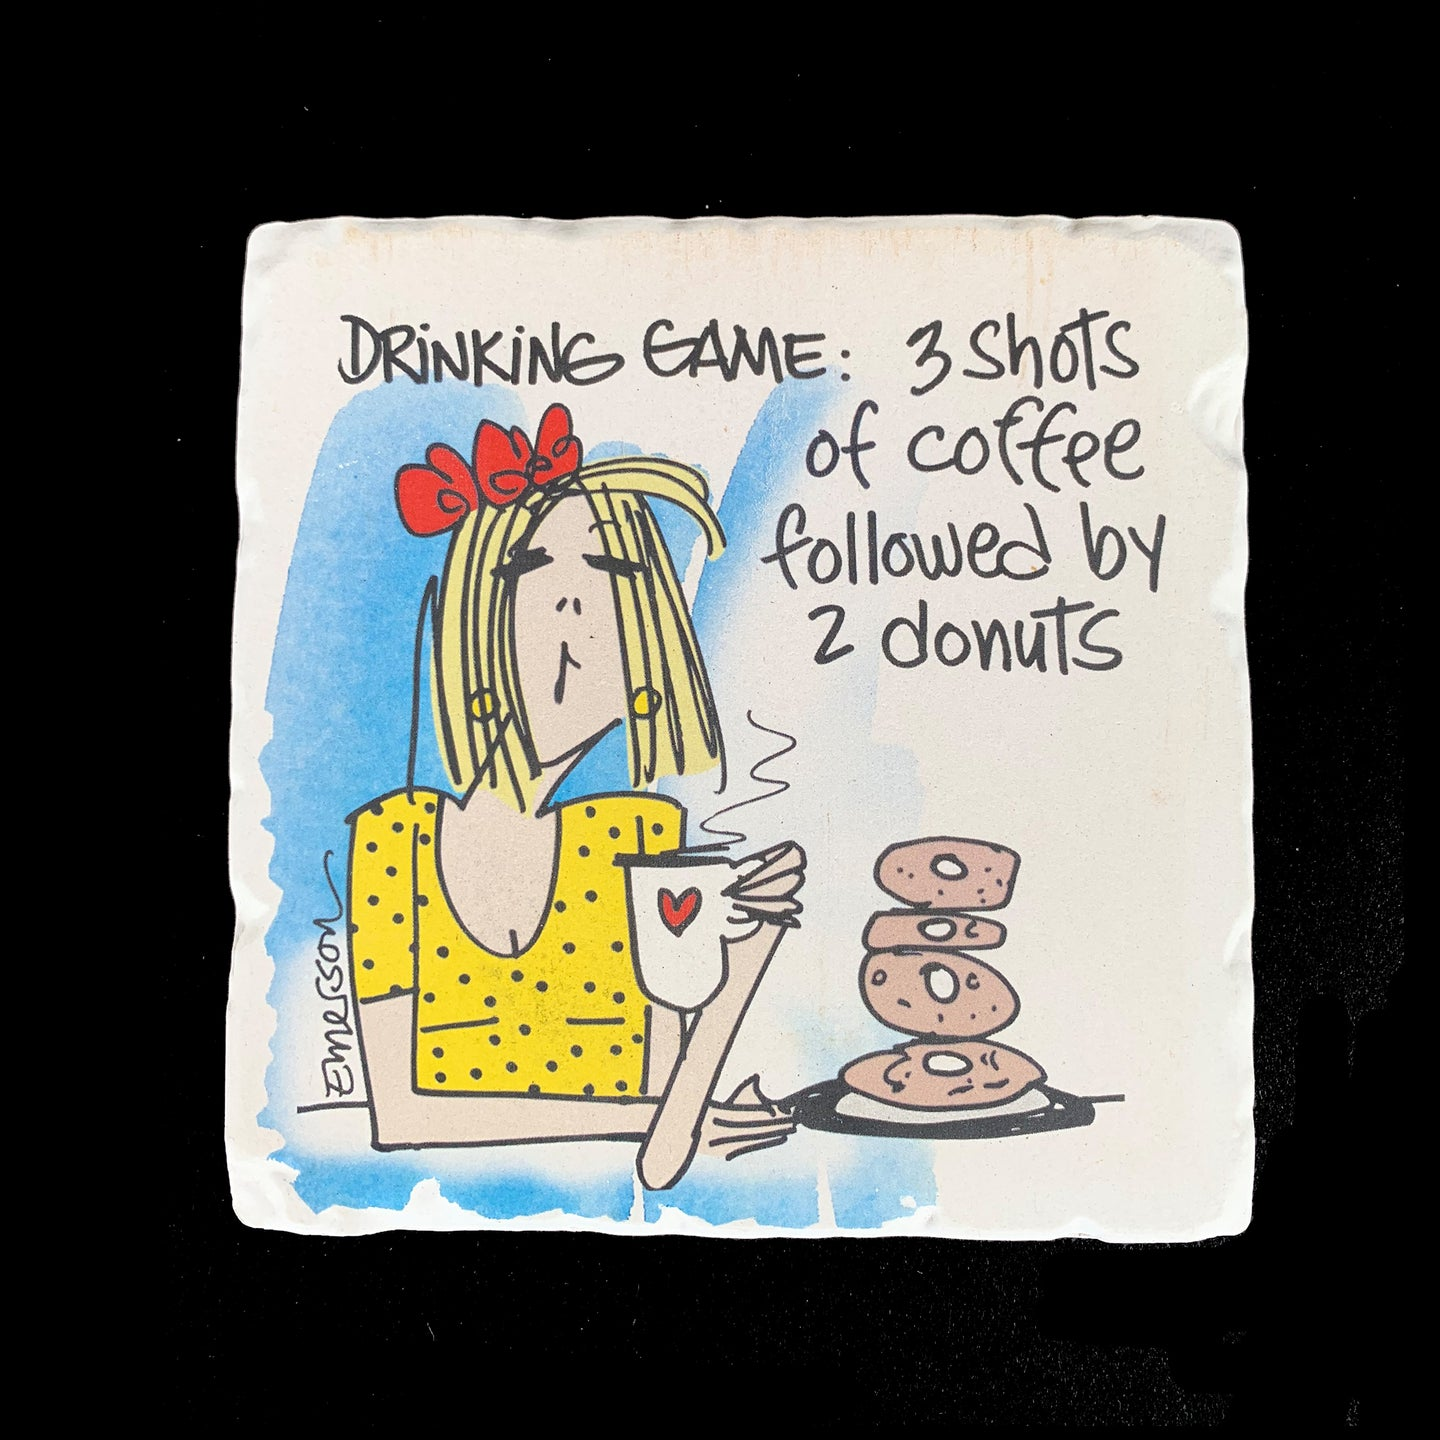 Drinking Game: 3 Shots of Coffee Followed by 2 Donuts - Coaster